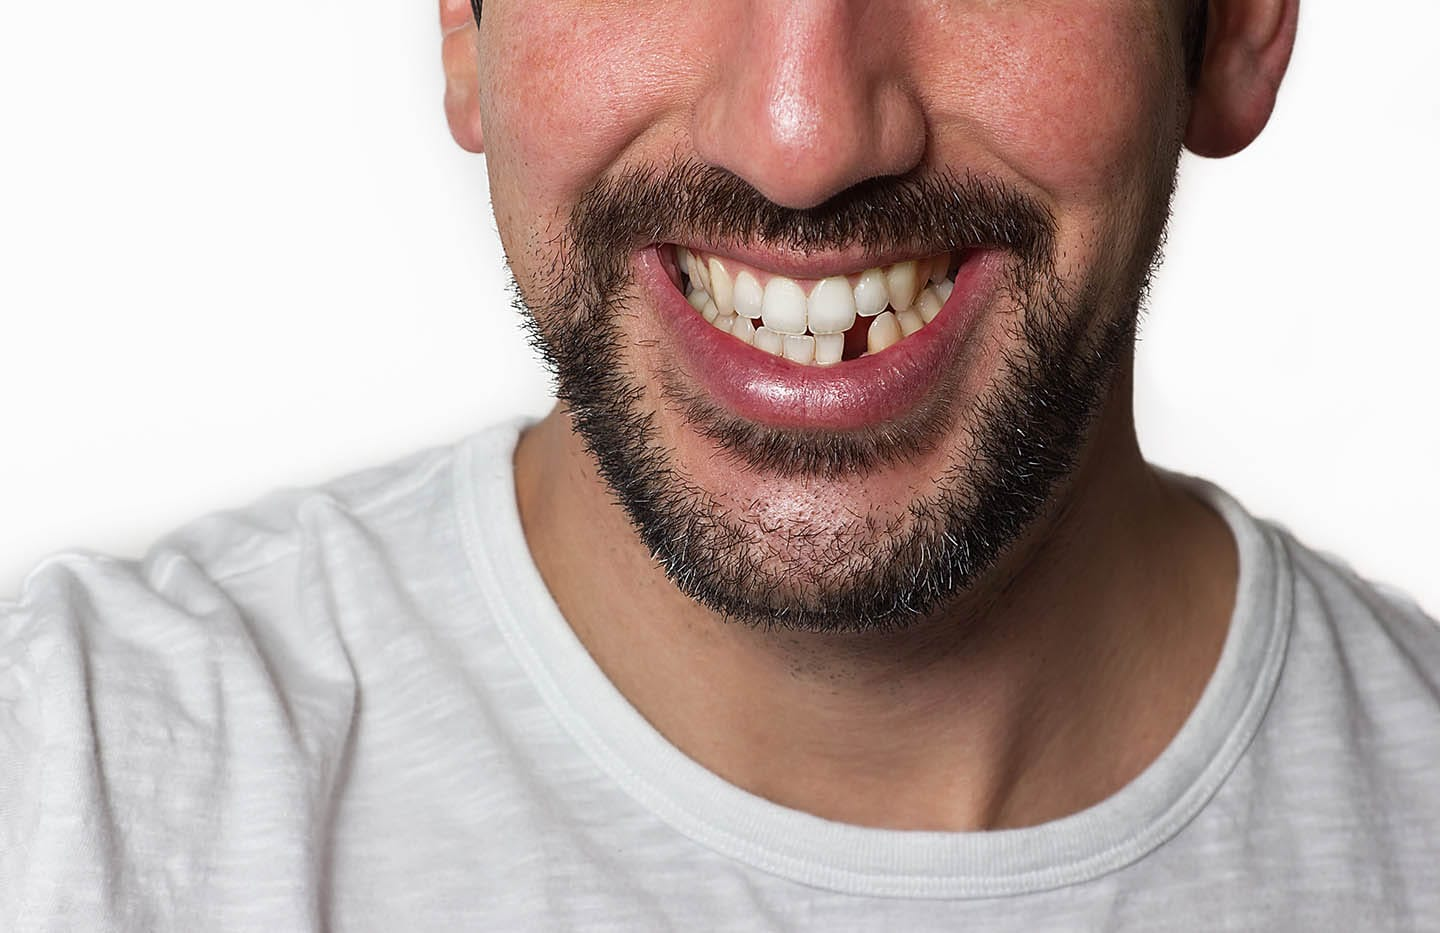 A man smiling with a missing tooth